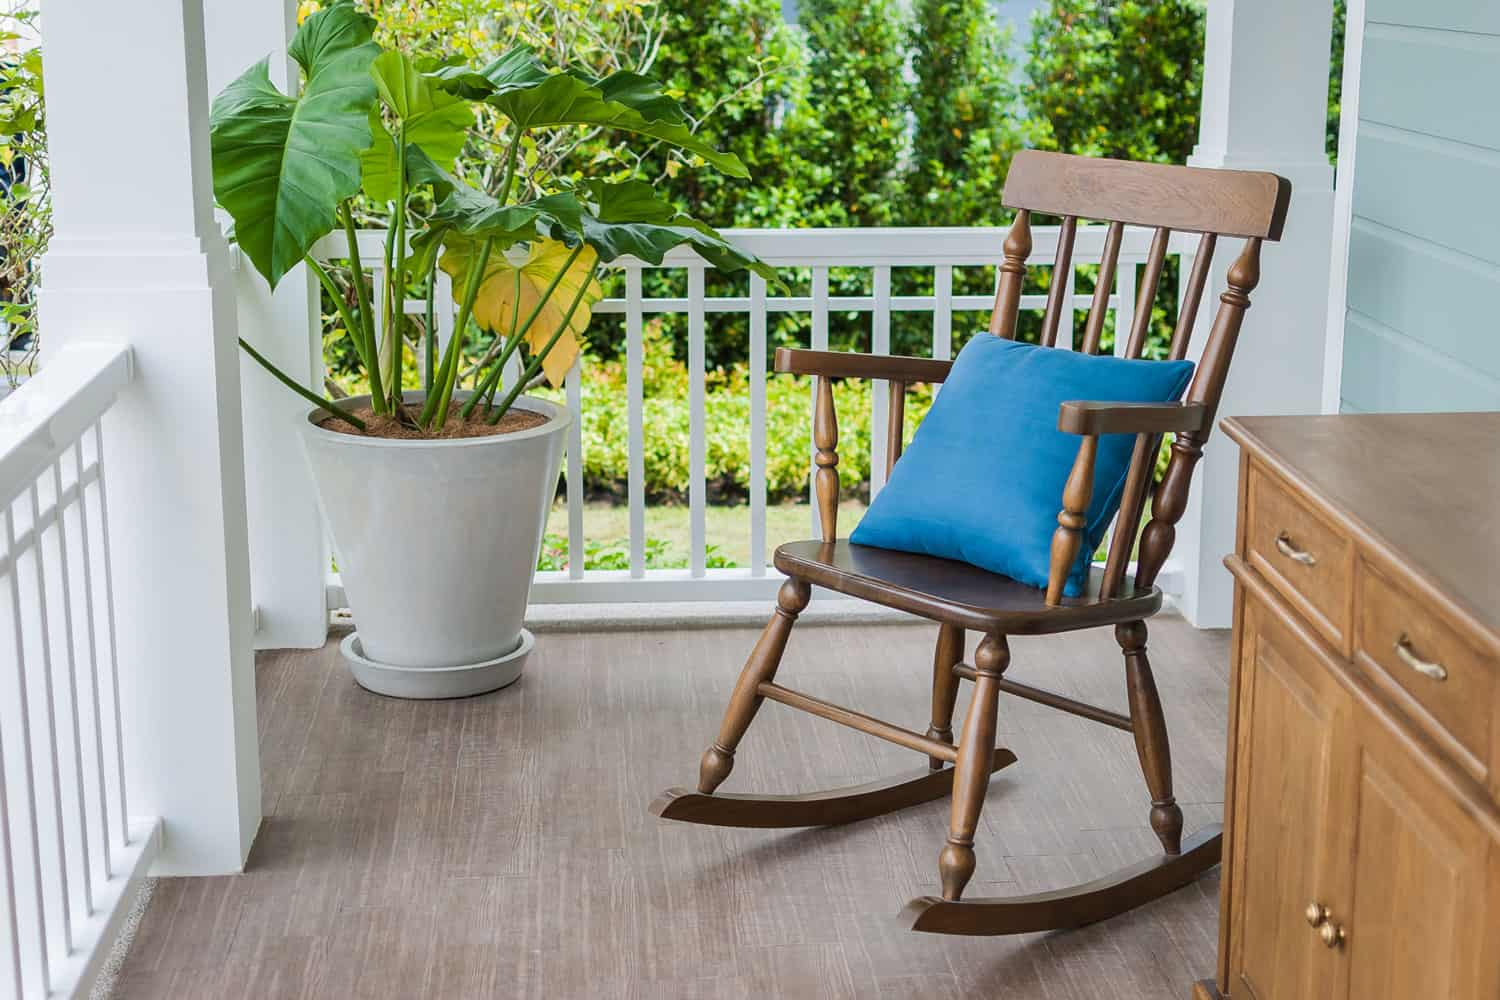 A front porch with wooden laminated flooring, a small wooden rocking chair, and a white painted porch fence